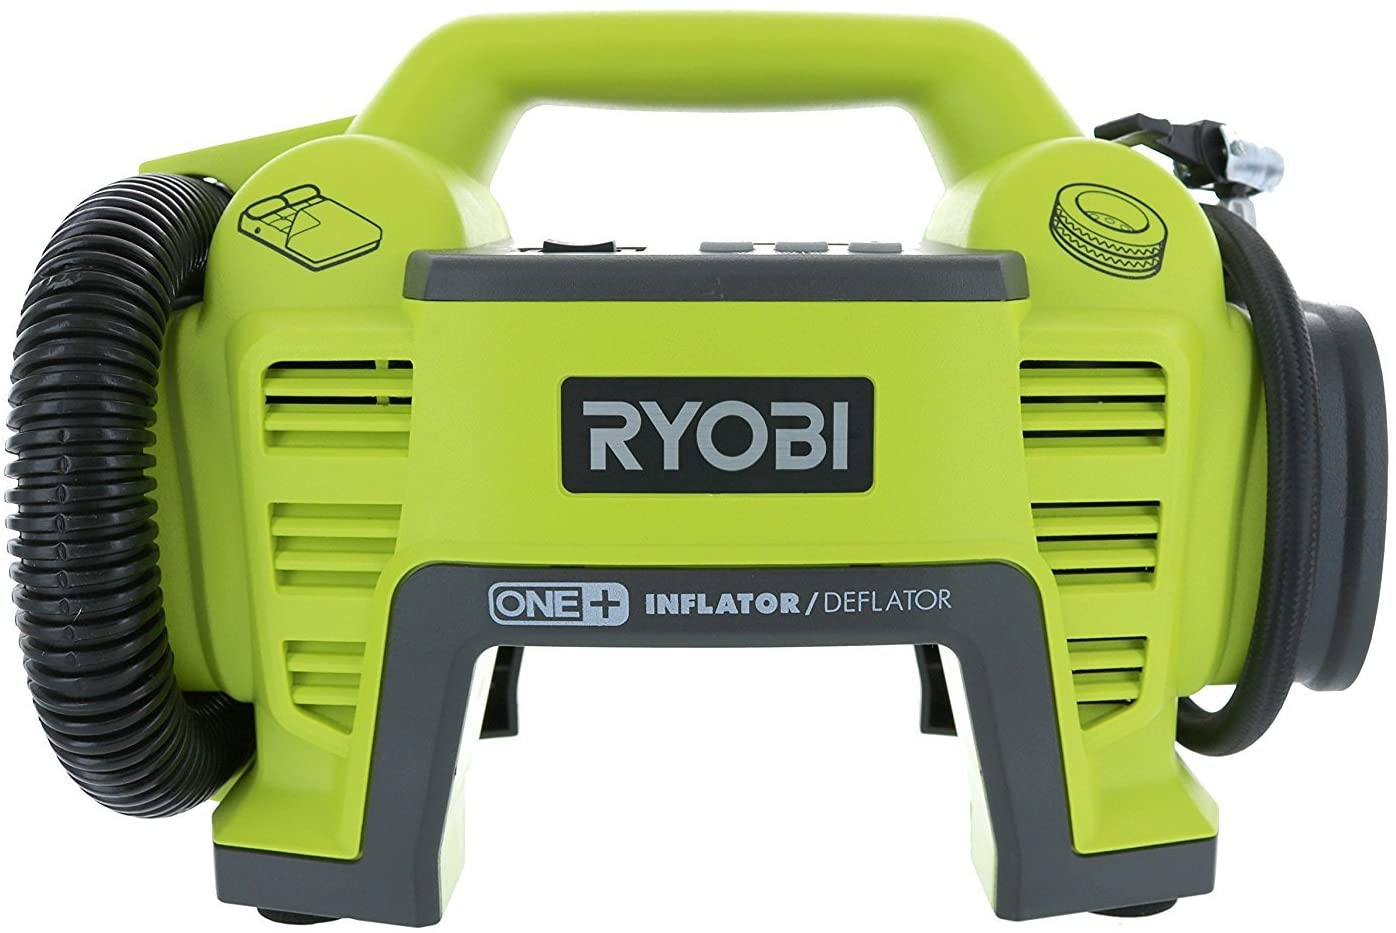 Ryobi P731 One 18v Dual Function Power Inflator Deflator Cordless Air Compressor Kit w Adapters Battery Not Included, Tool Only